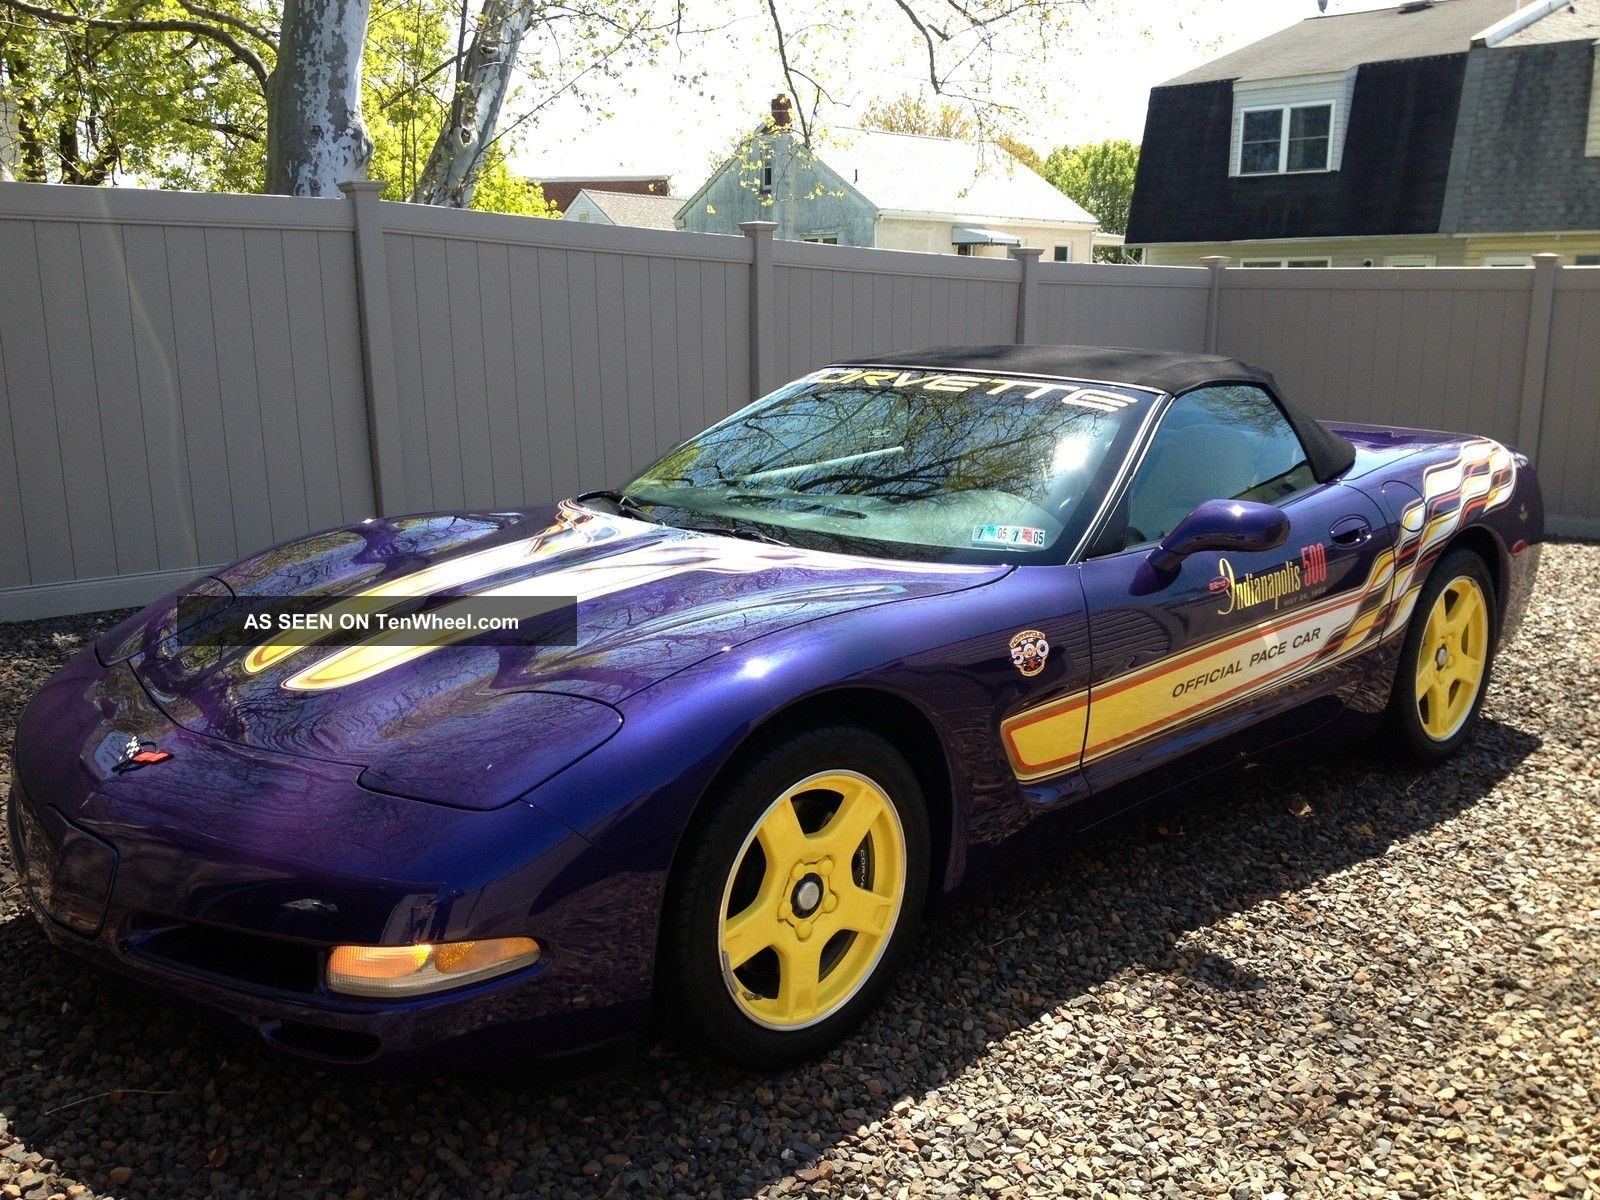 1998 Corvette Indy 500 Pace Car Corvette photo